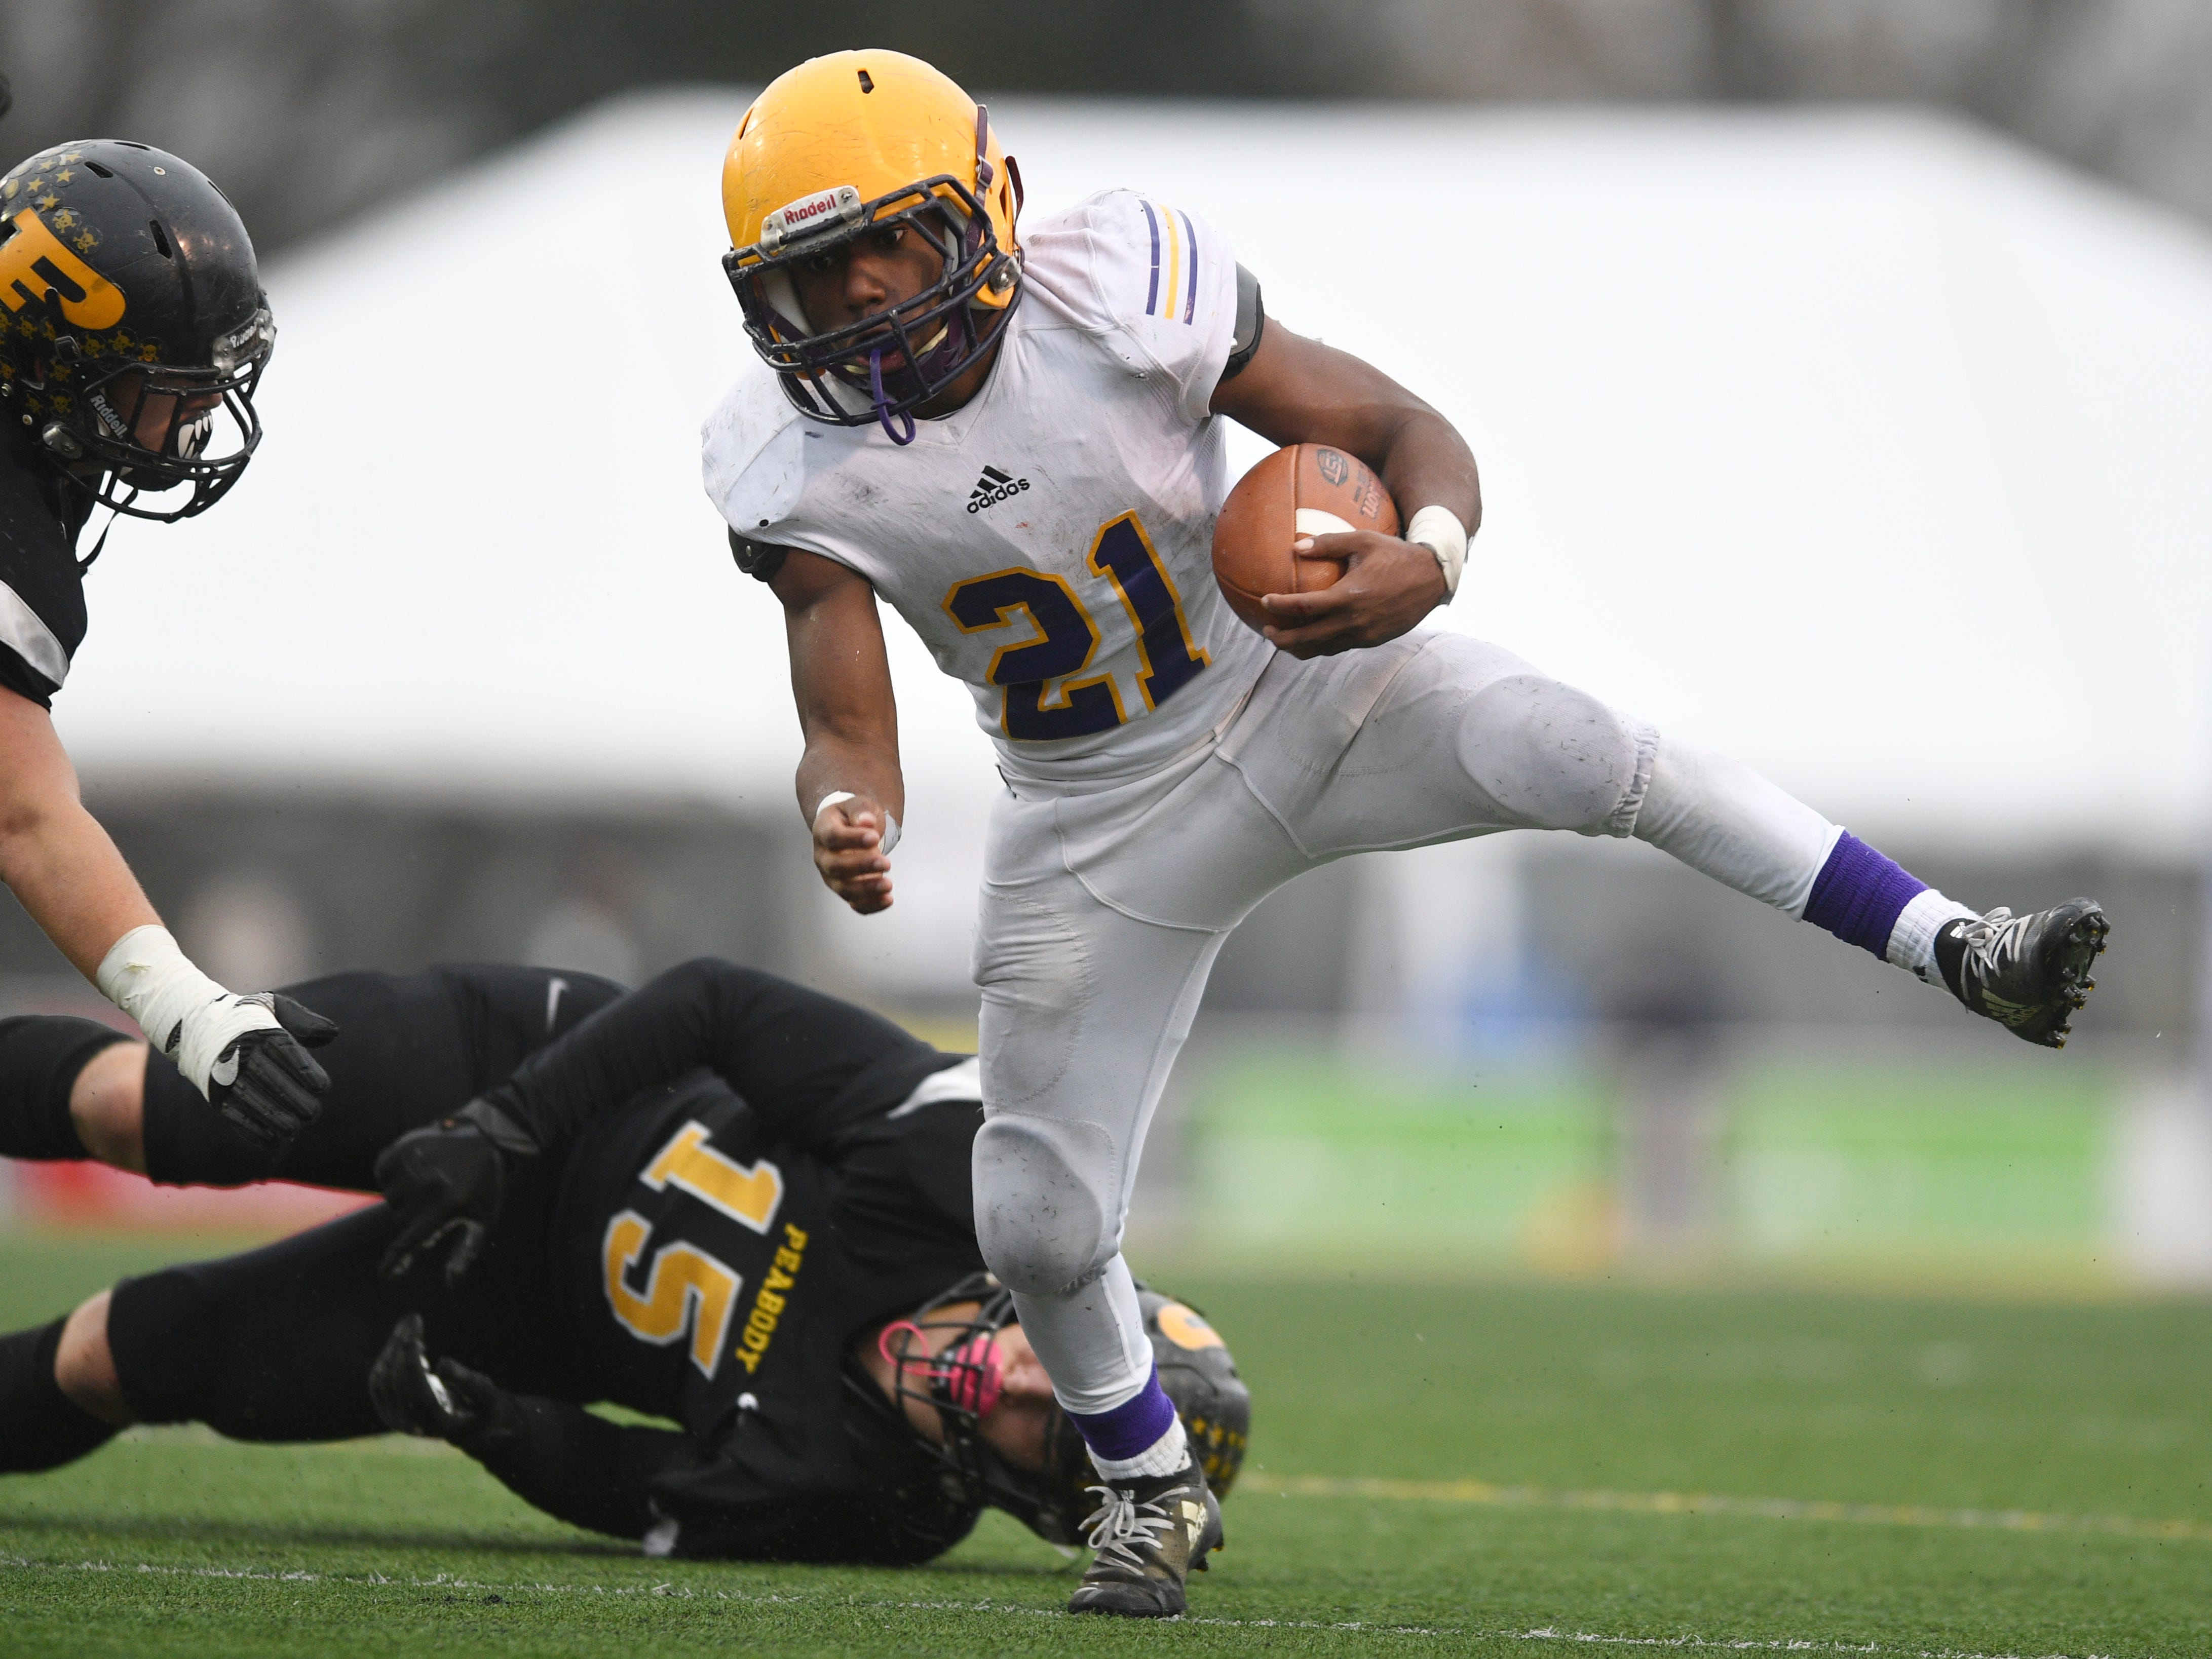 Trousdale's Dyson Satterfield (21) gains yards in the third quarter during the Class 2A BlueCross Bowl state championship at Tennessee Tech's Tucker Stadium in Cookeville, Tenn., on Thursday, Nov. 29, 2018.